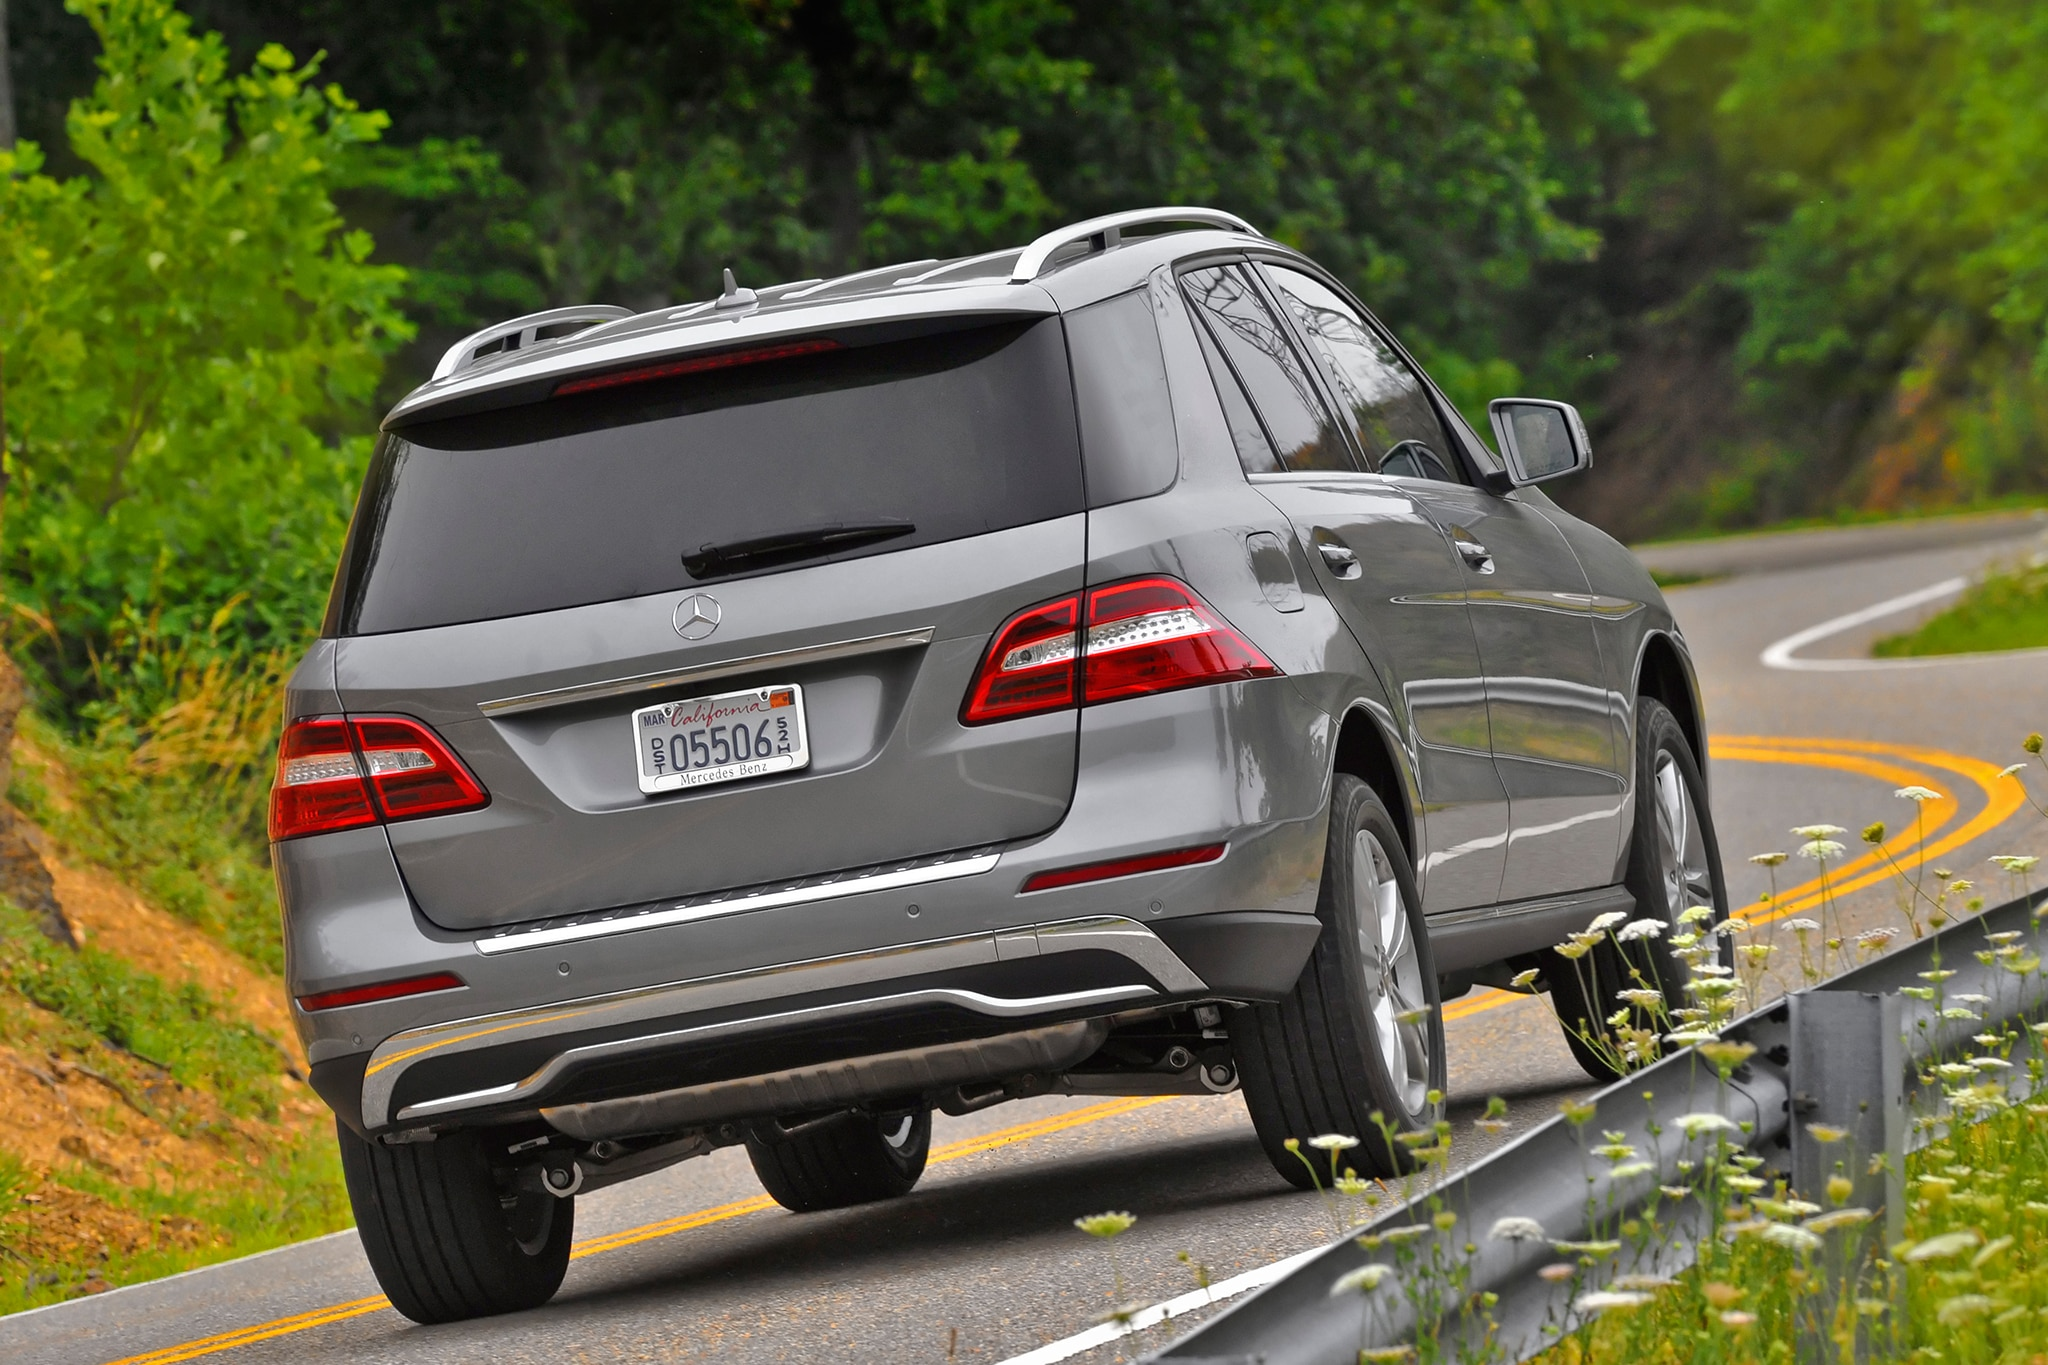 Brabus mercedes ml63 gl63 amg get 186 mph top speed for Mercedes benz ml350 msrp